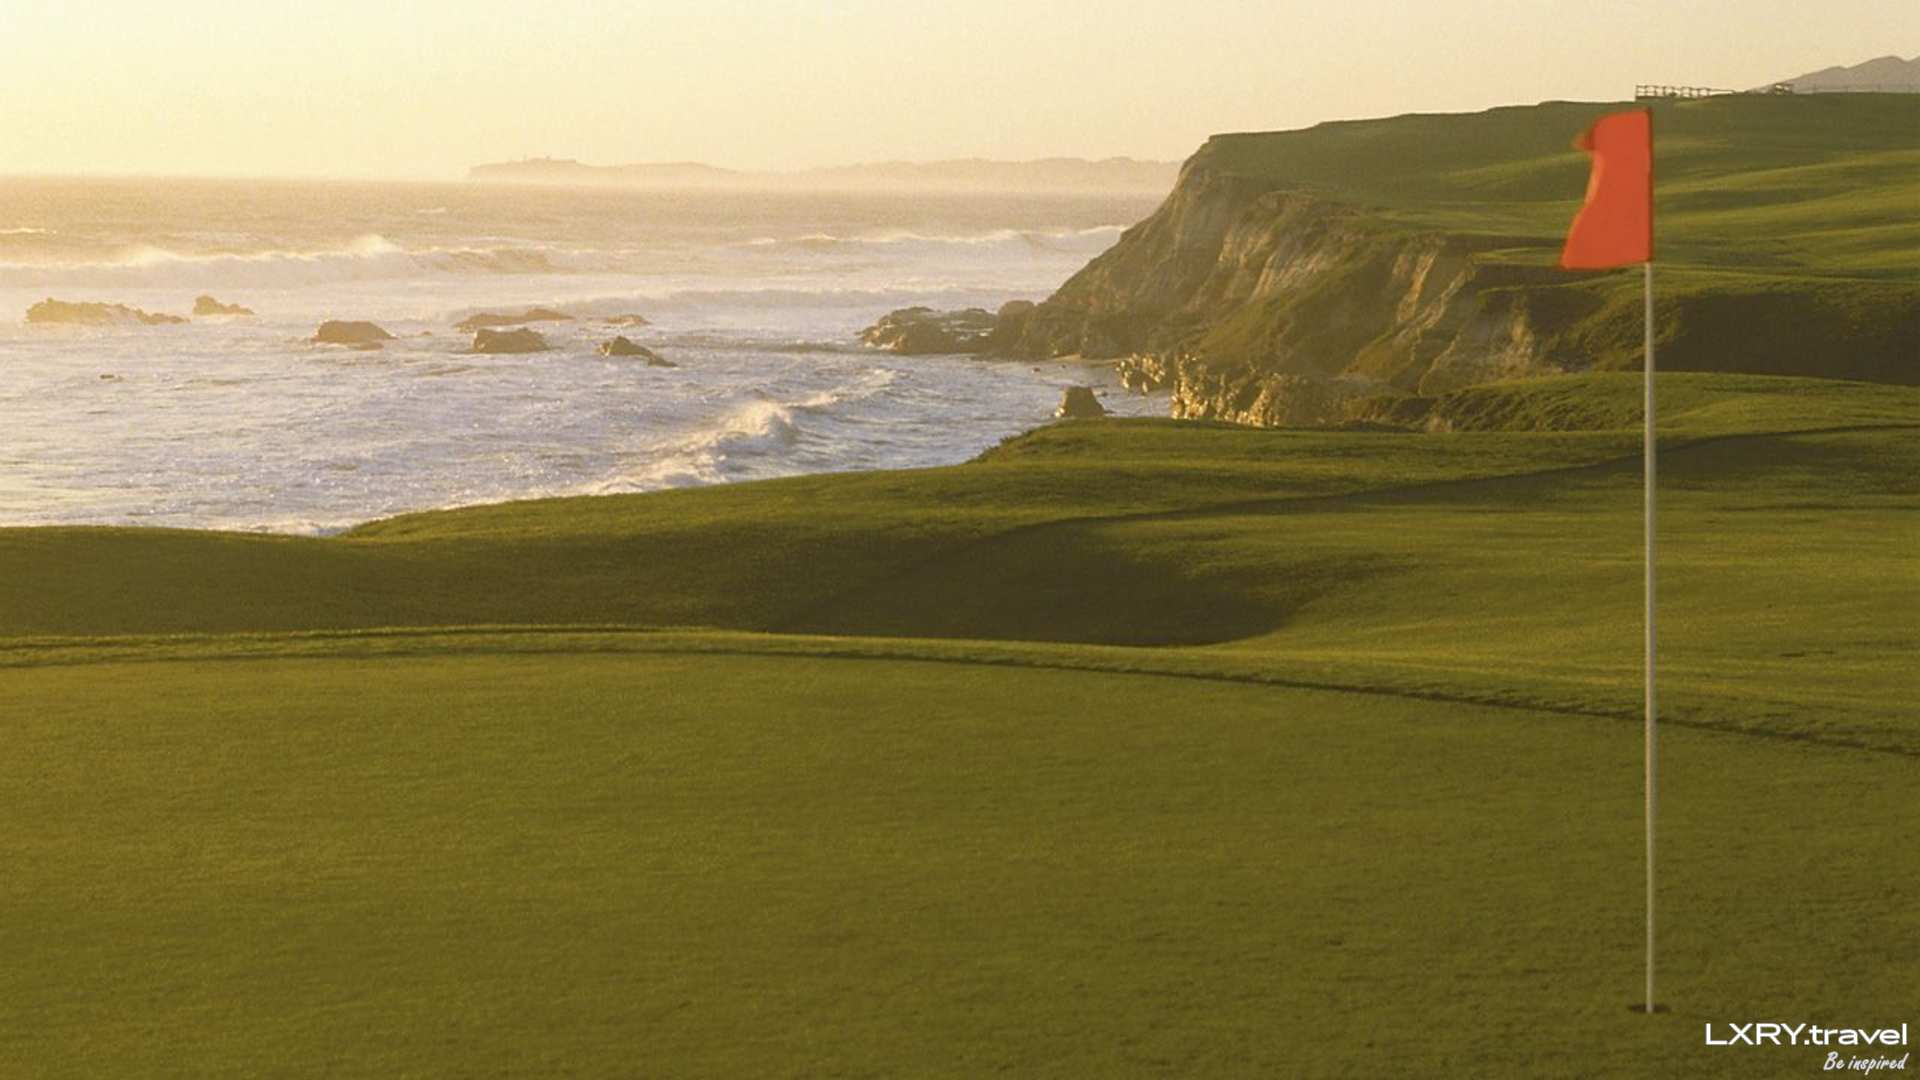 The Ritz-Carlton, Half Moon Bay 9/50